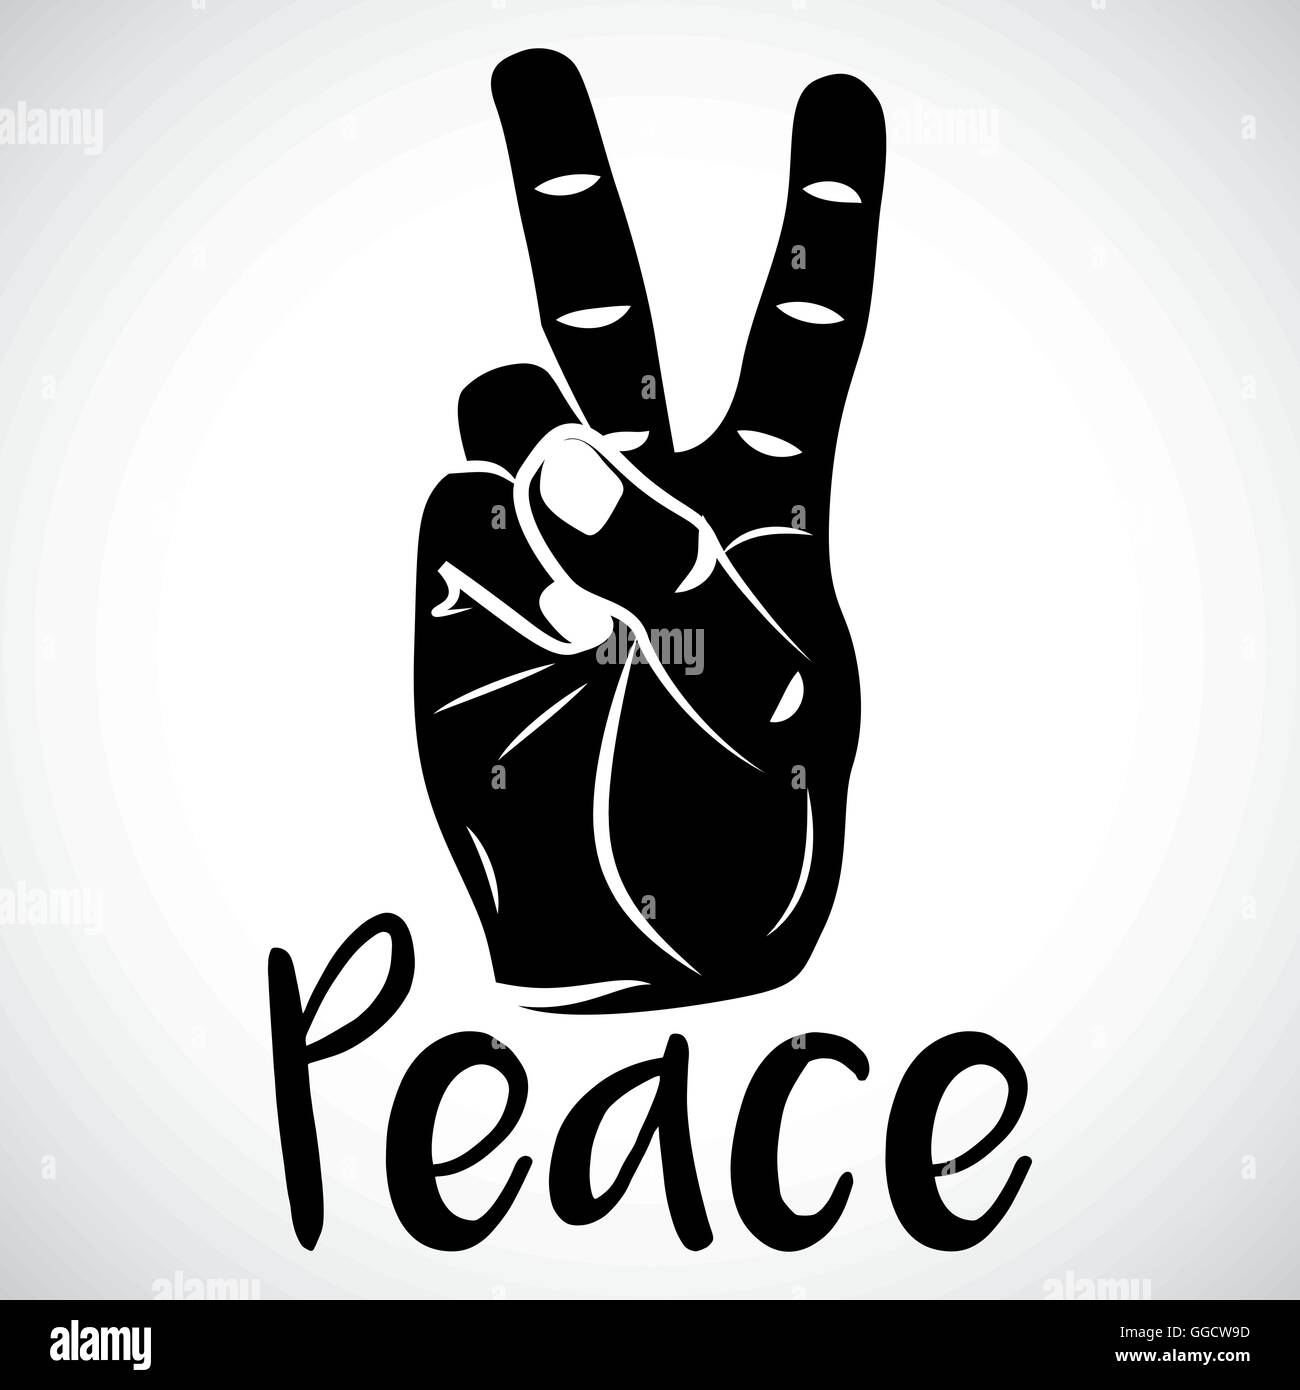 Icon hand peace sign for creative use in graphic design stock icon hand peace sign for creative use in graphic design biocorpaavc